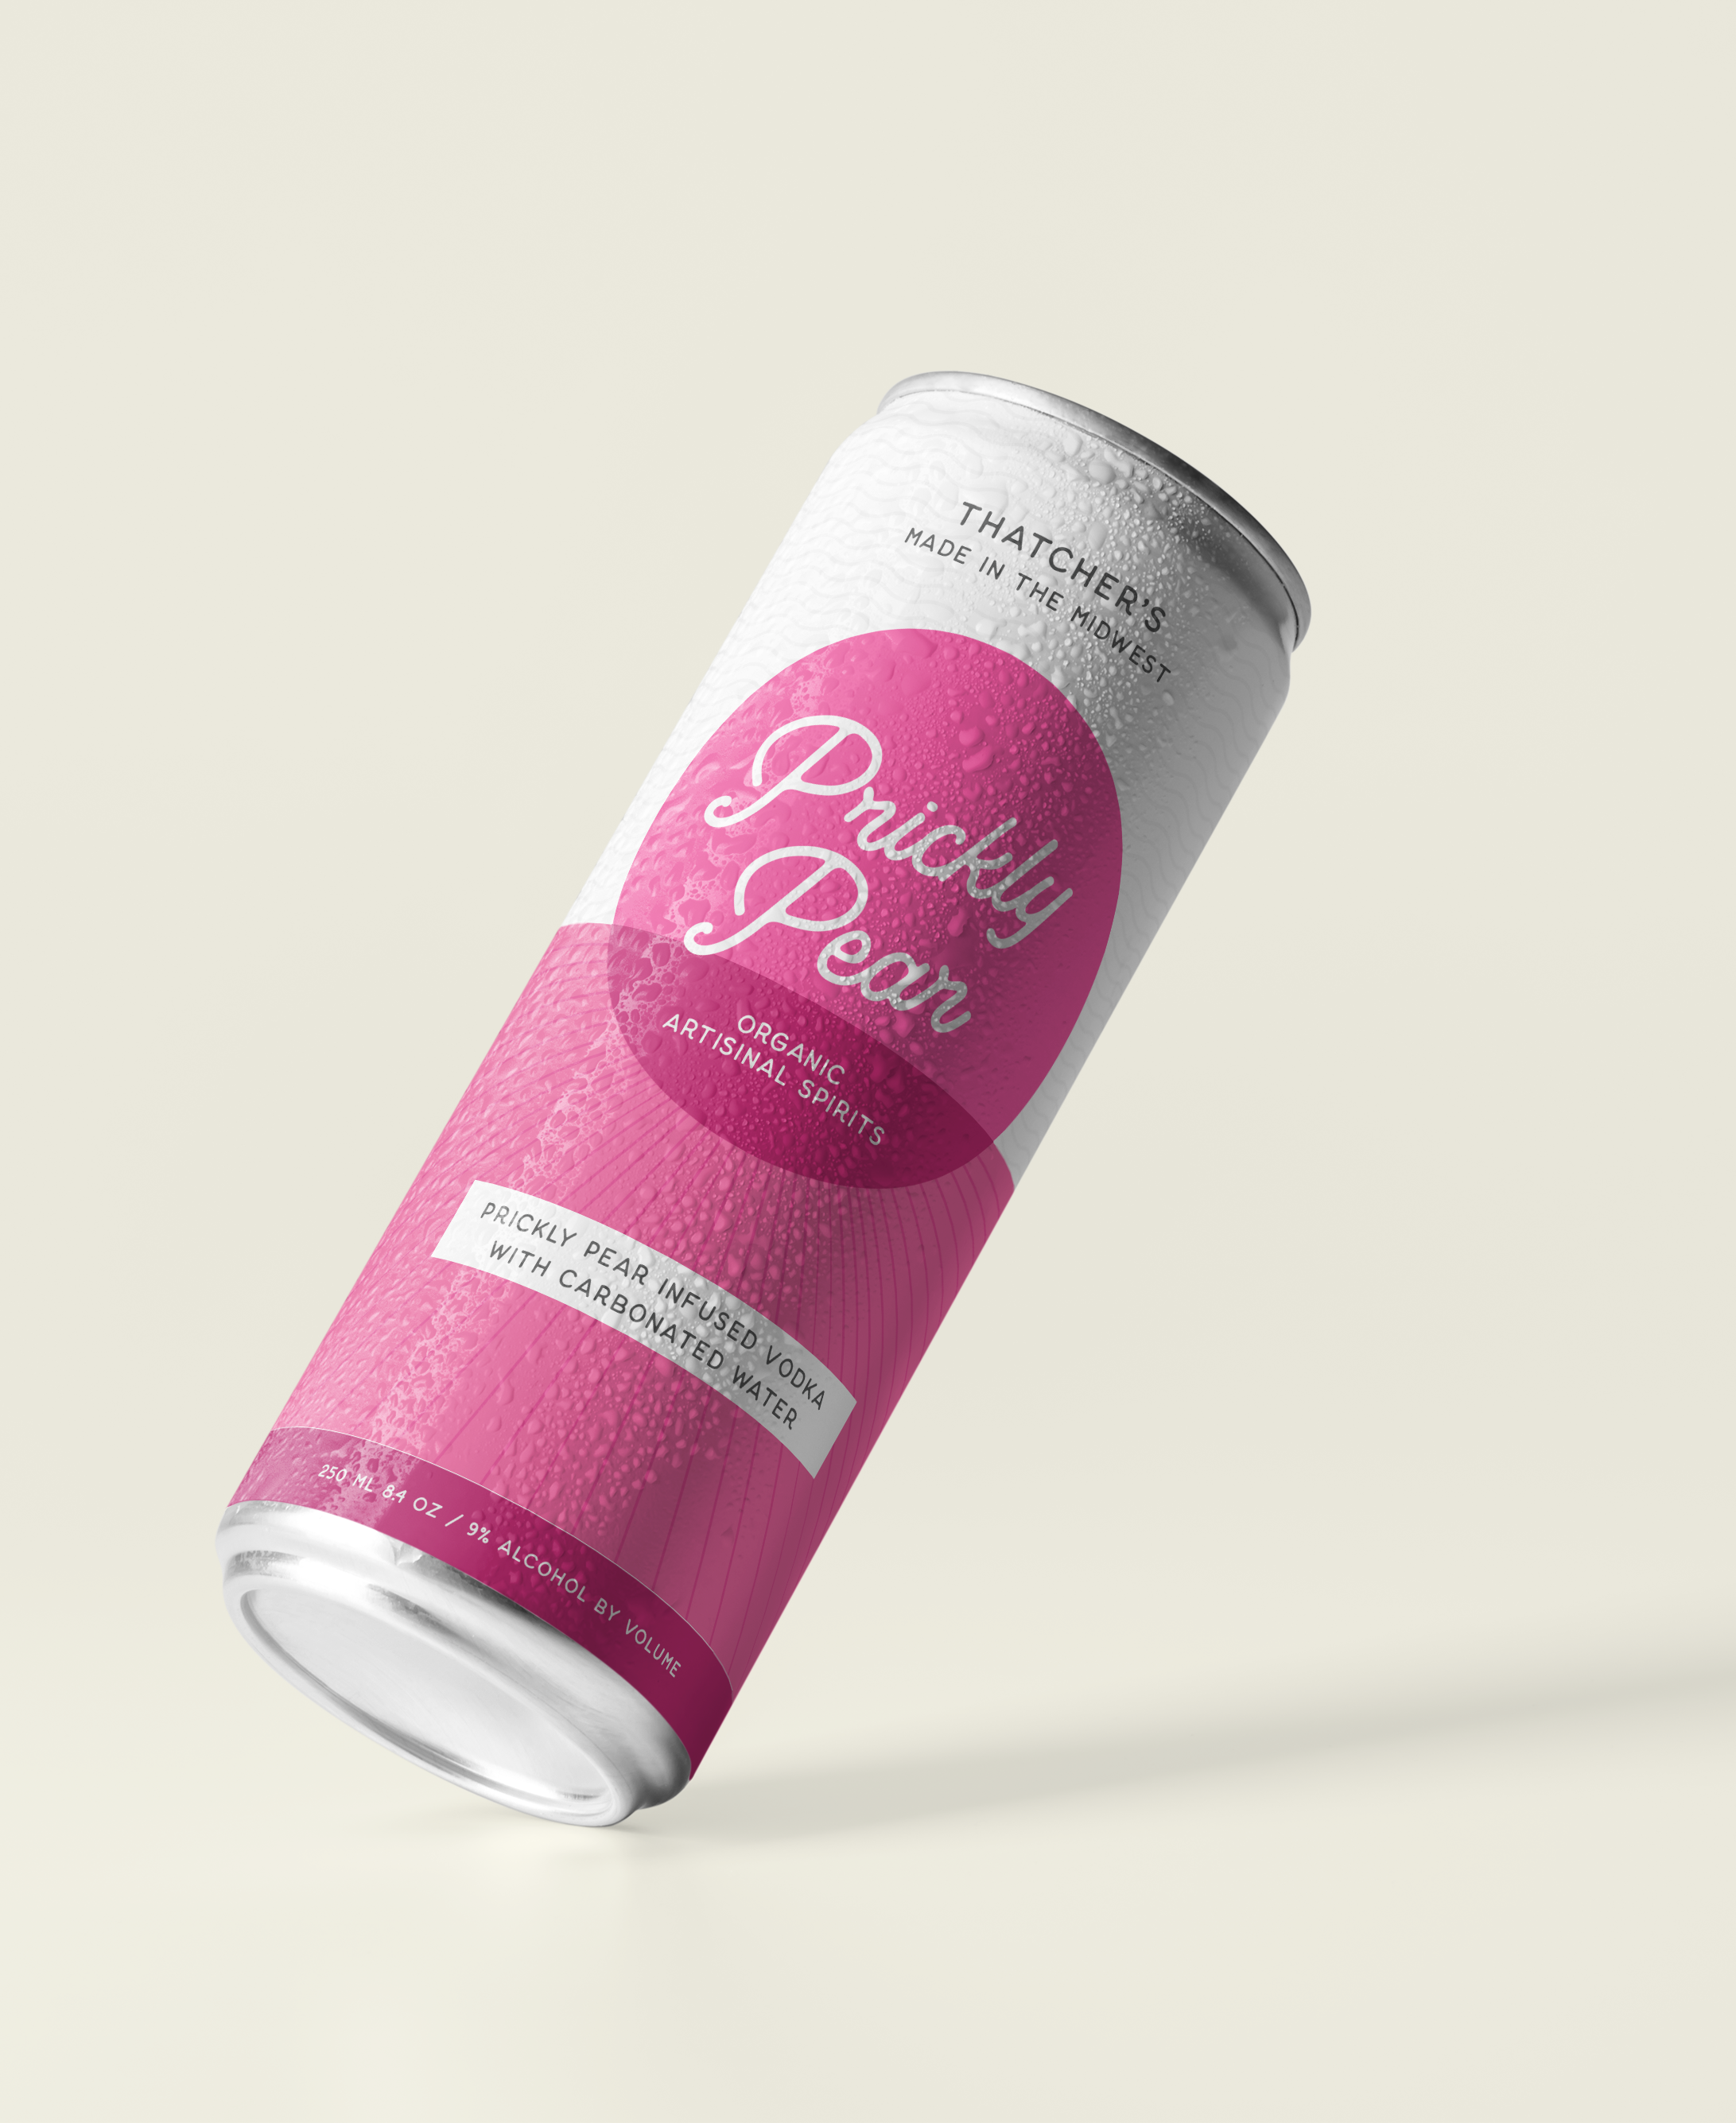 03_Can Mock-up _cropped.png